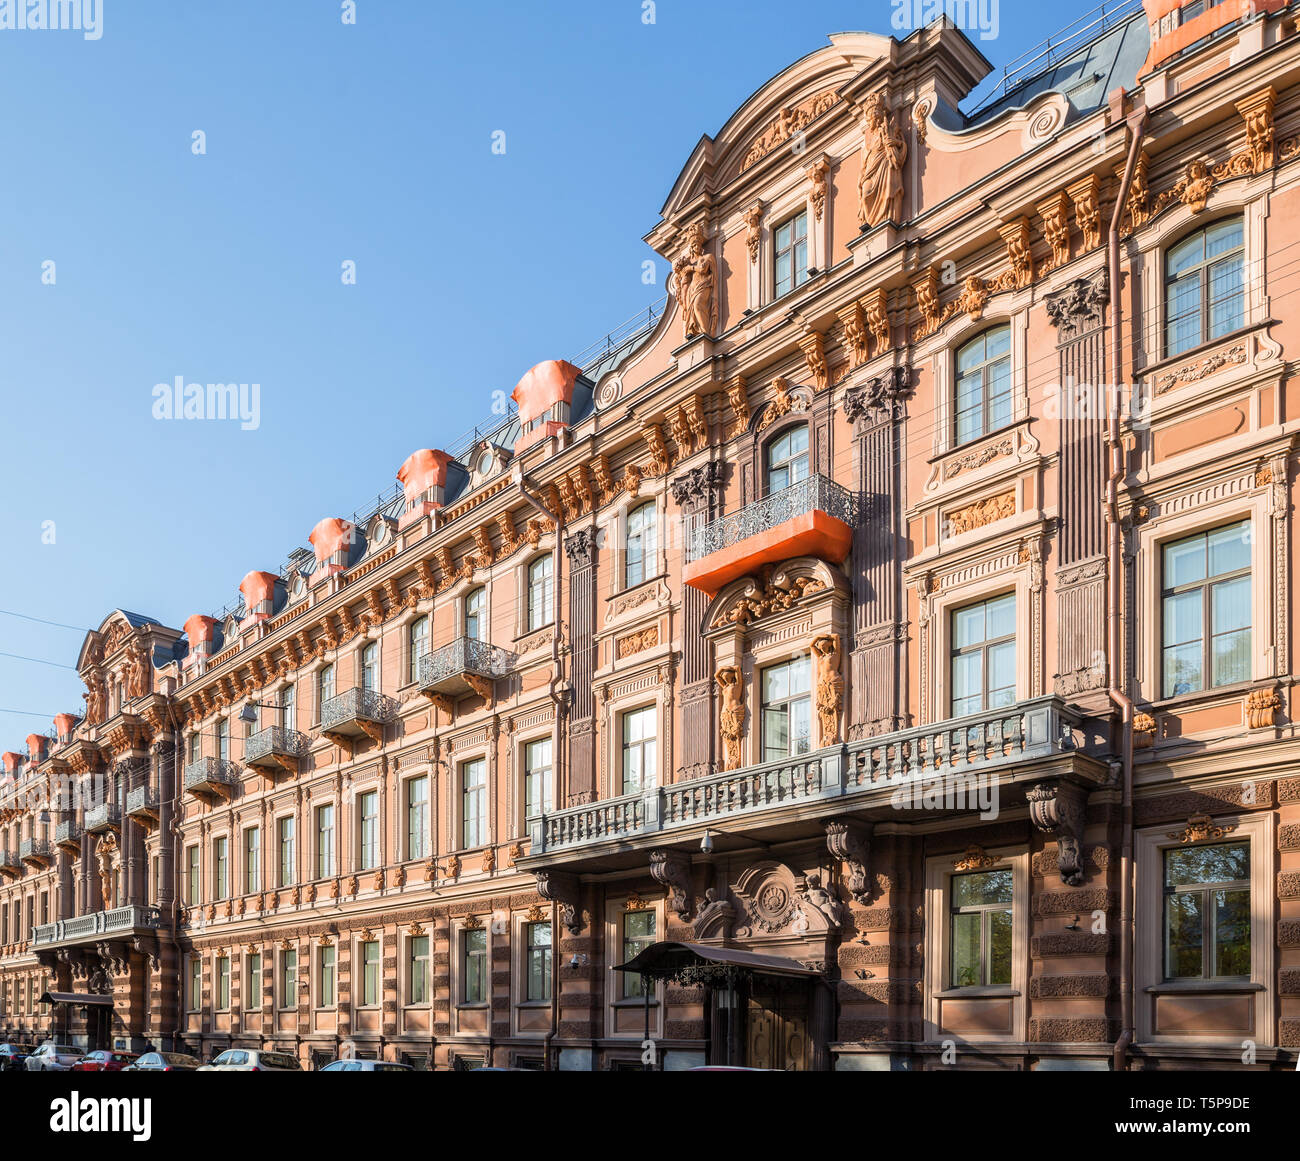 Profitable house of Utin in neo-baroque style was built in 1858 by architect Kuzmin R.I. on Horse Guards (Konnogvardeysky) Boulevard, St. Petersburg,  - Stock Image